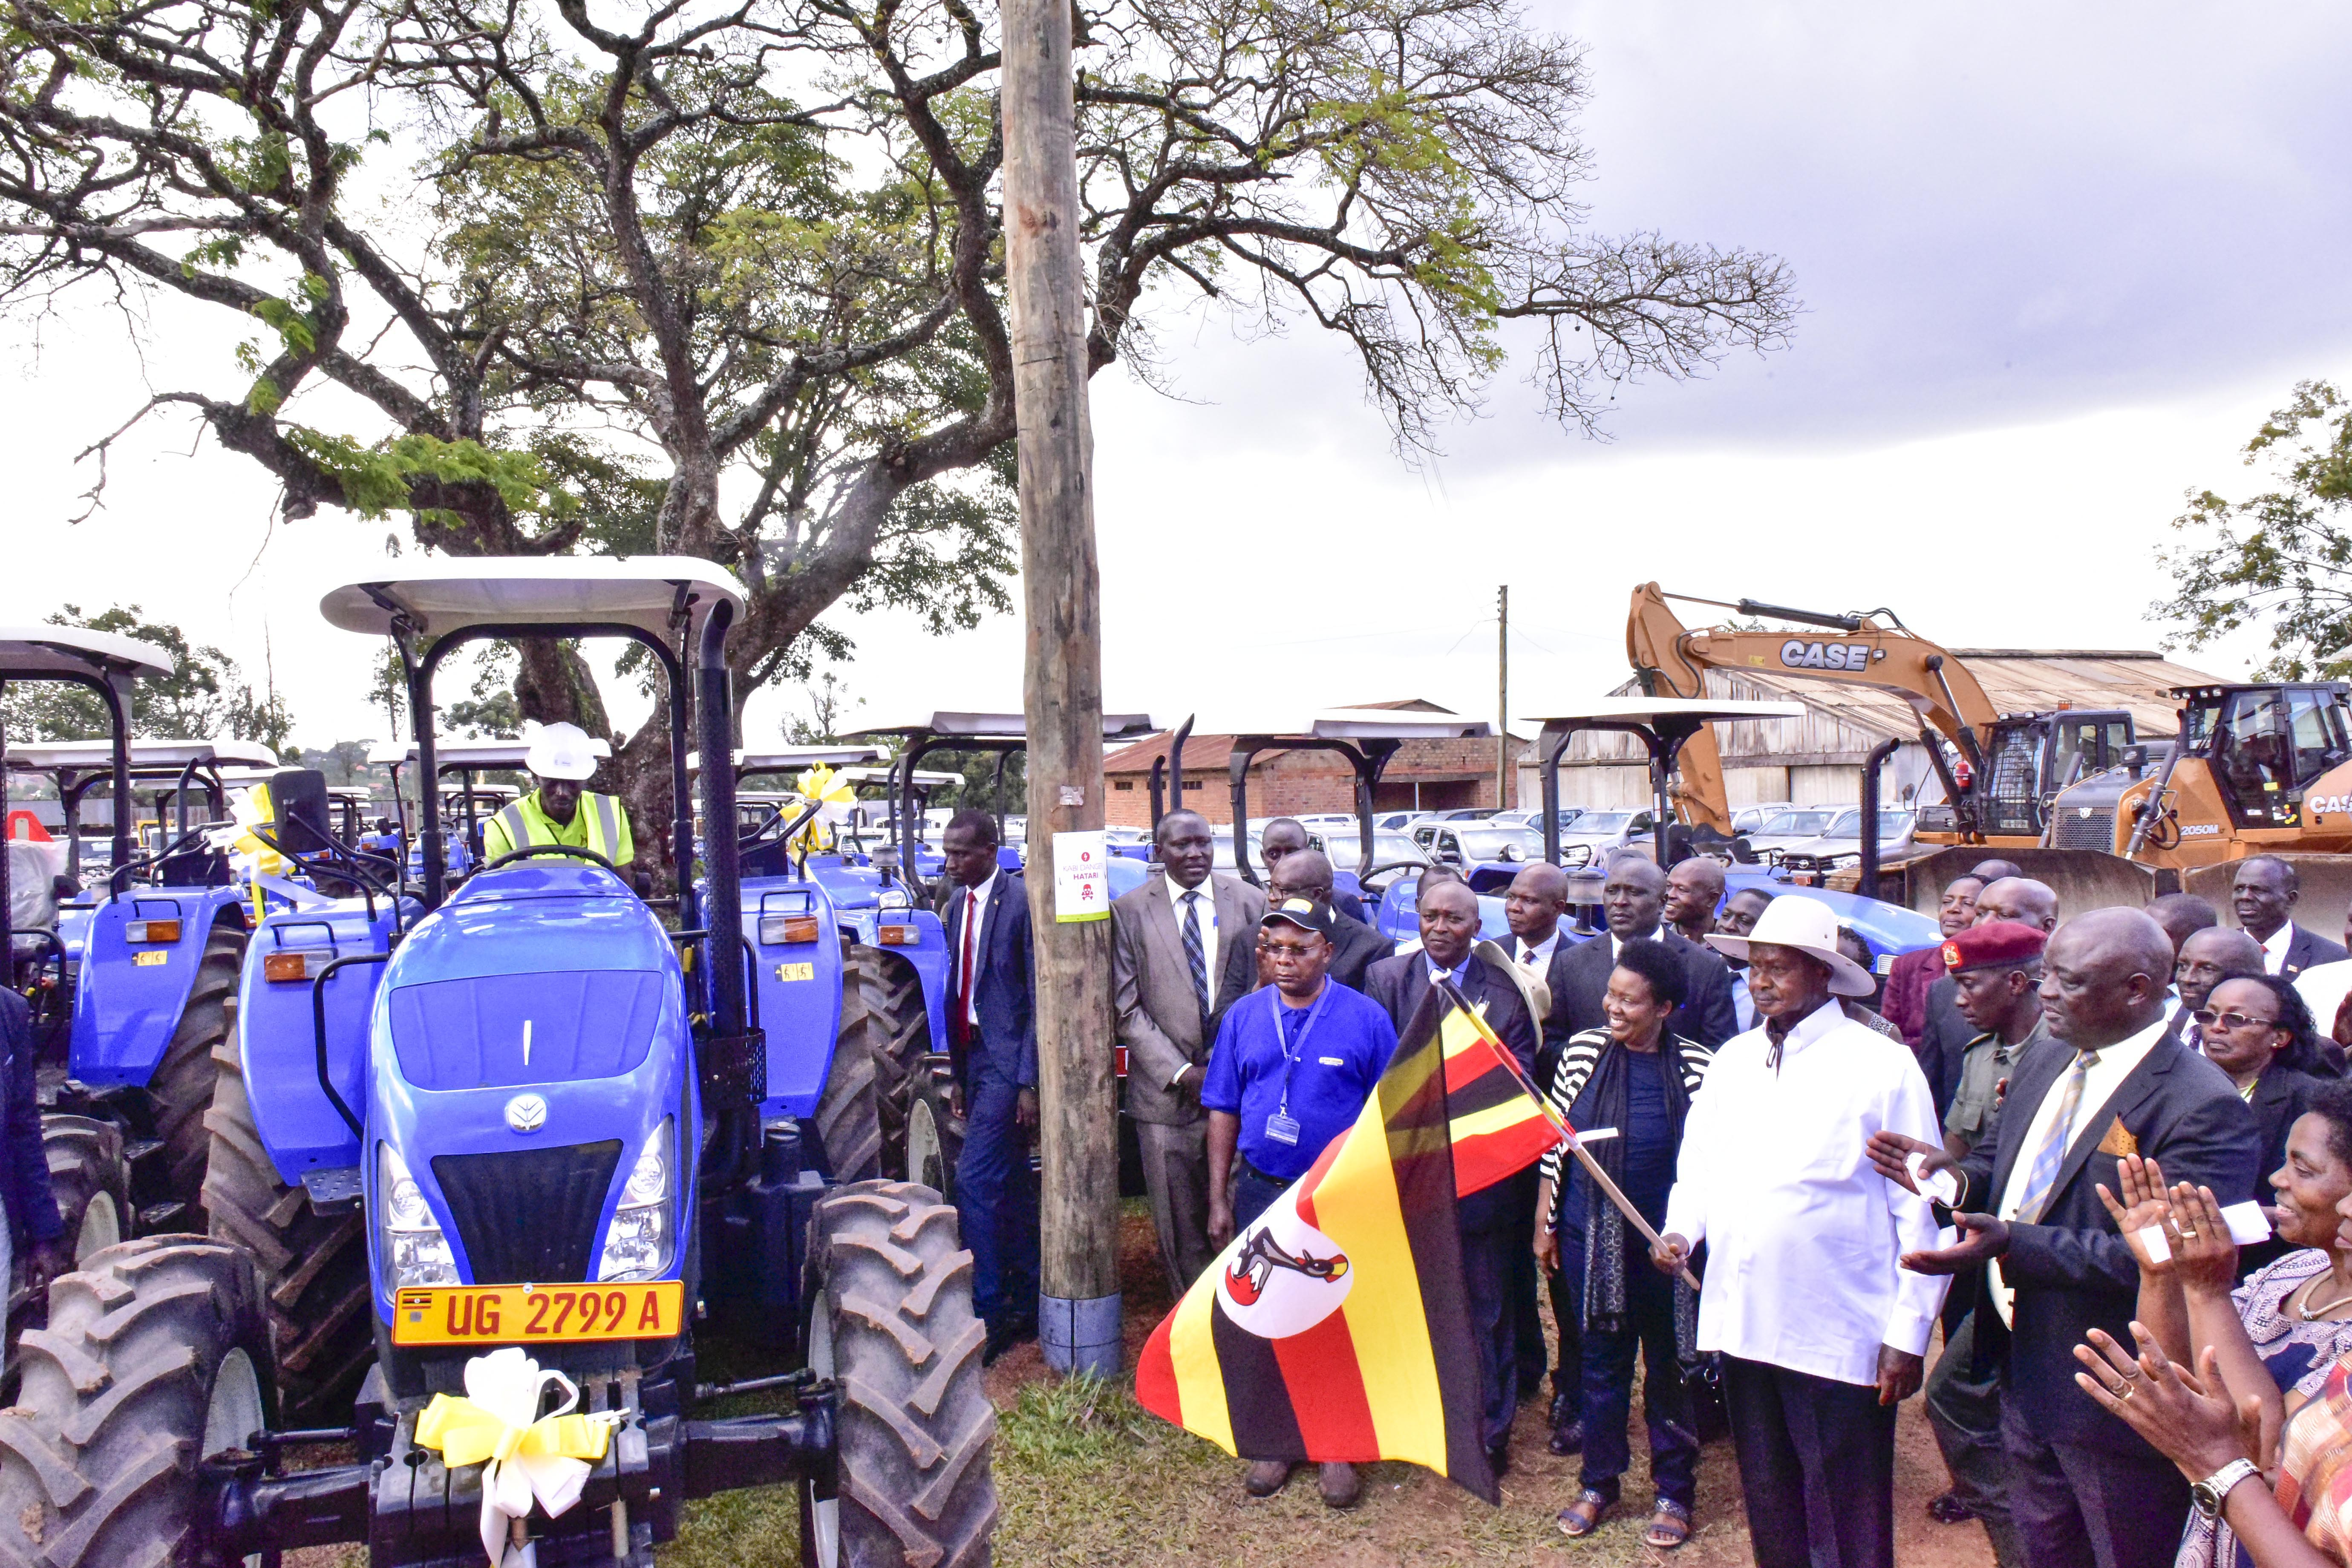 President Yoweri Kaguta Museveni flags off tractors and vehicles during the Launch and hand out heavy machinery tractors, motor vehicles and motor cycles to Agriculture extension workers for agric transformation in Namalere , Wakiso district on Thursday 7th March 2019